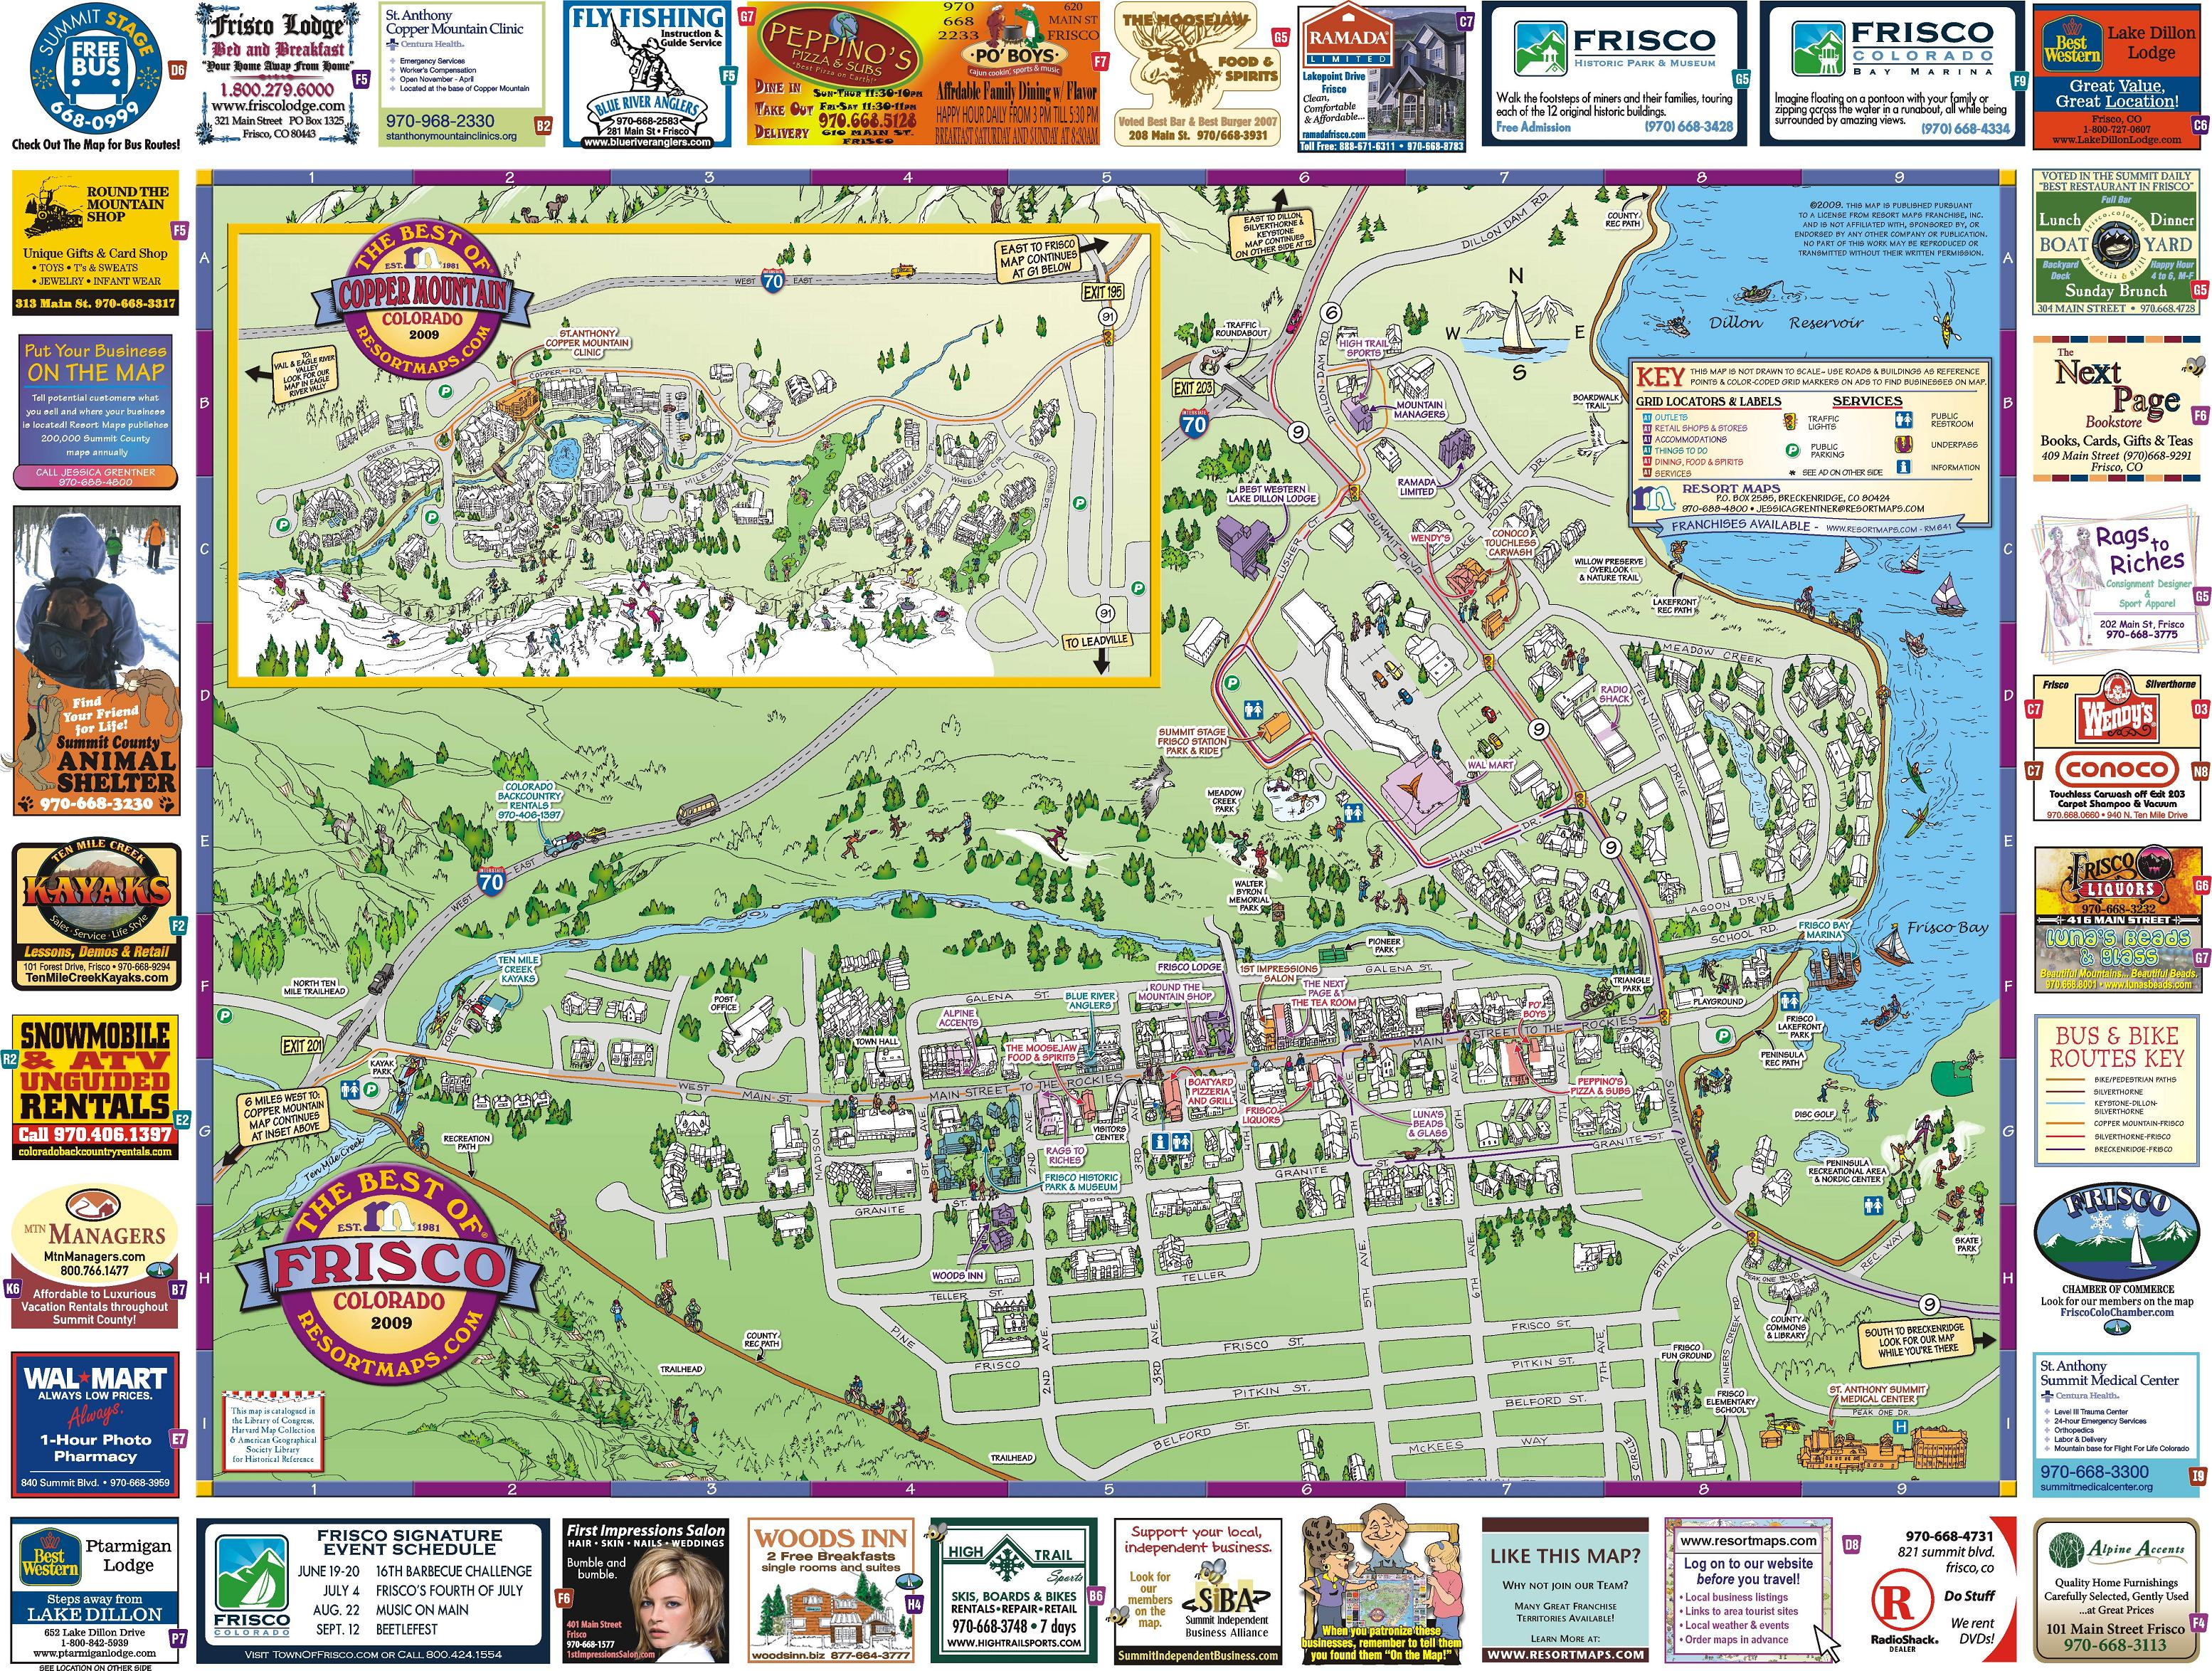 Frisco CO Resort Map   FriscoCO amp Copper MountainCO • mappery